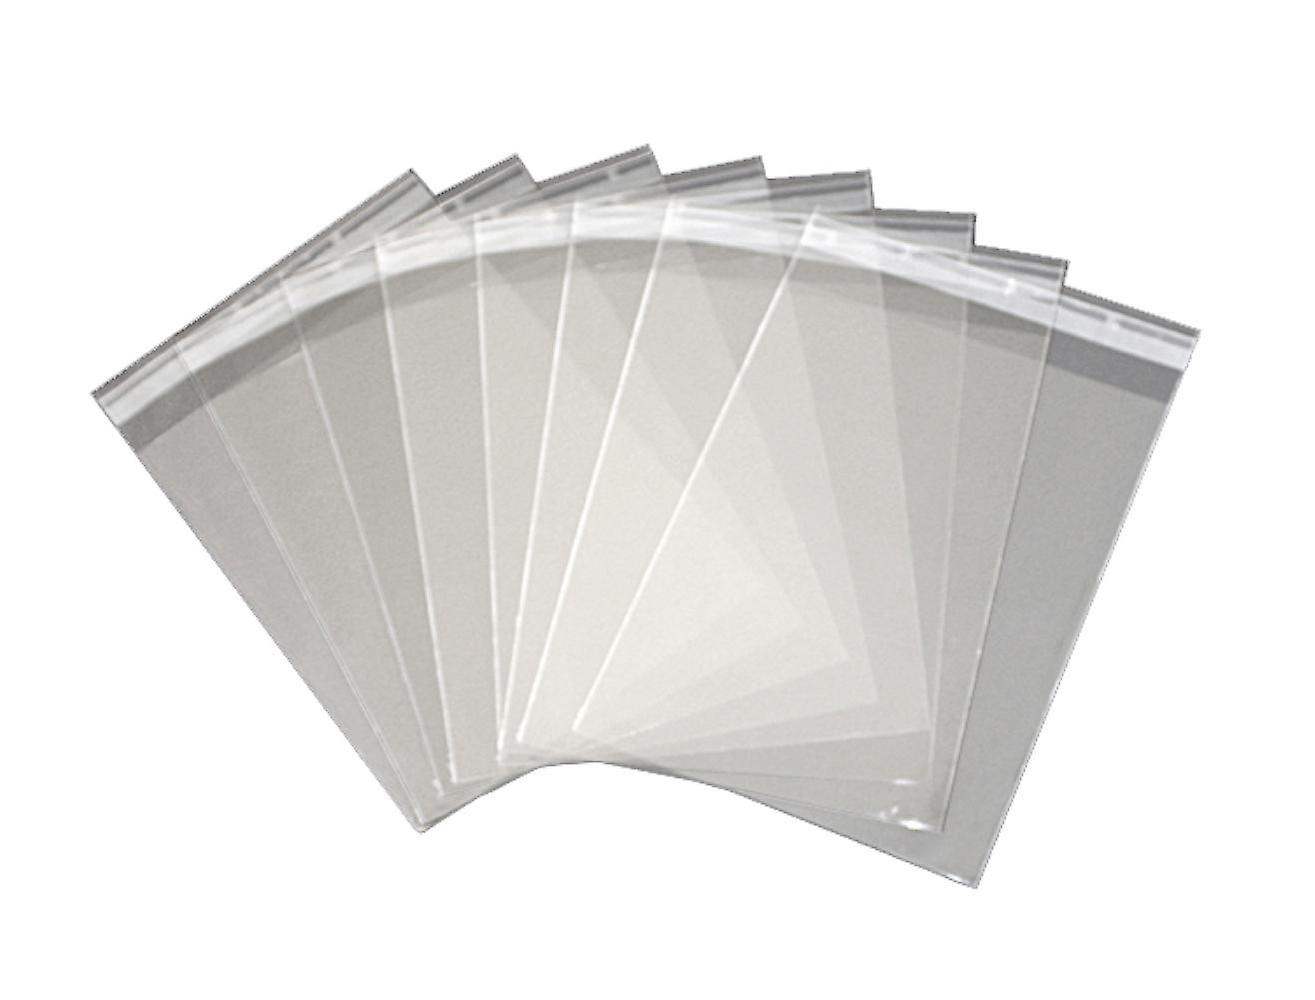 100 x Peel & Seal Clear Cello Cellophane Bags Wallets for Cards, Photos, Inkless Kits